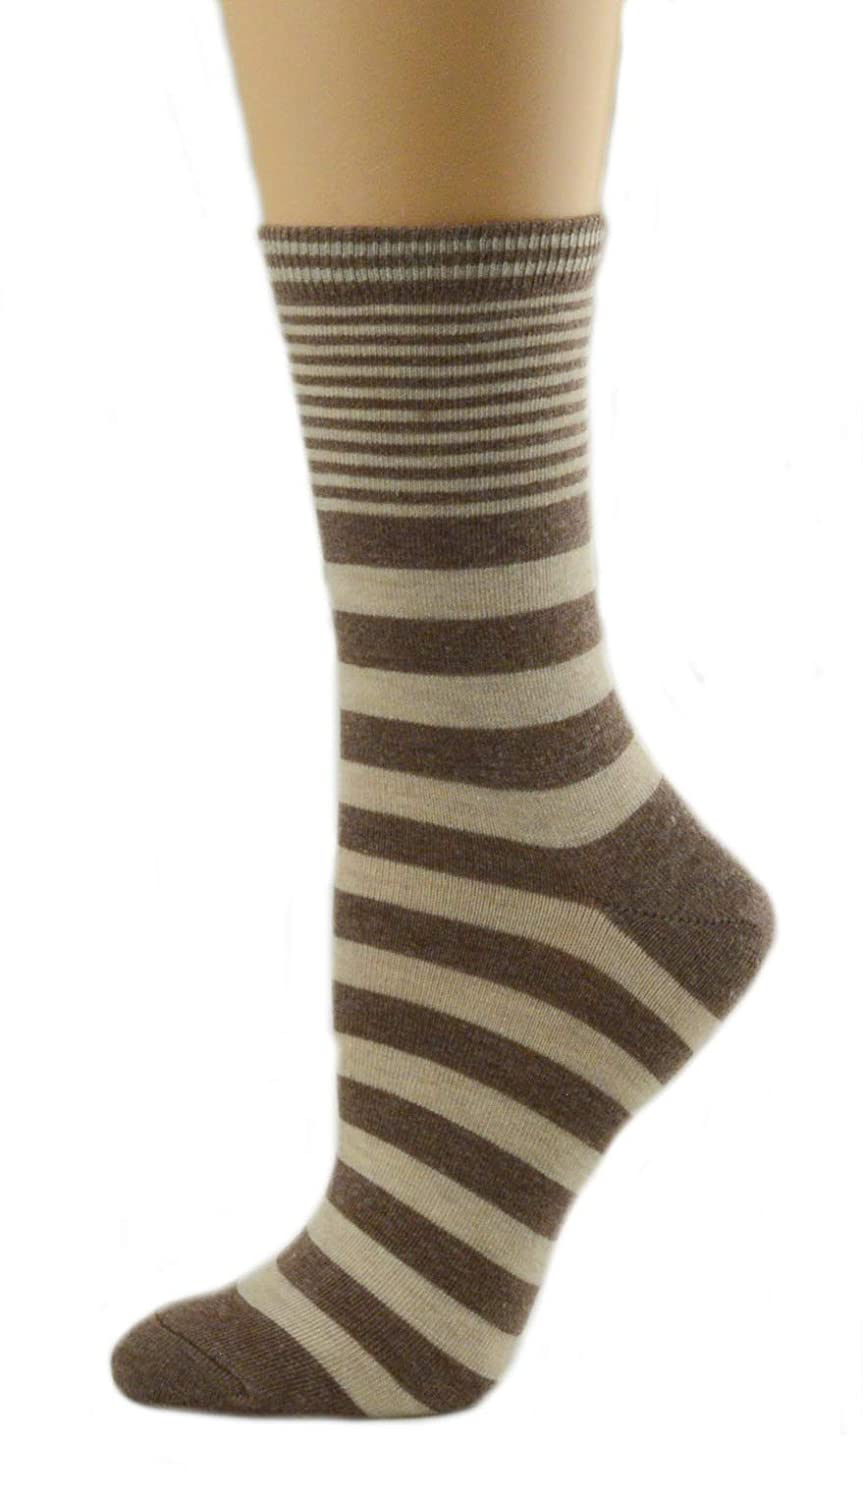 Sierra Socks Women 2-Pair Pack Striped Crew Cotton Socks 2276 (Large (9-11), Brown/Khaki) at Amazon Womens Clothing store: